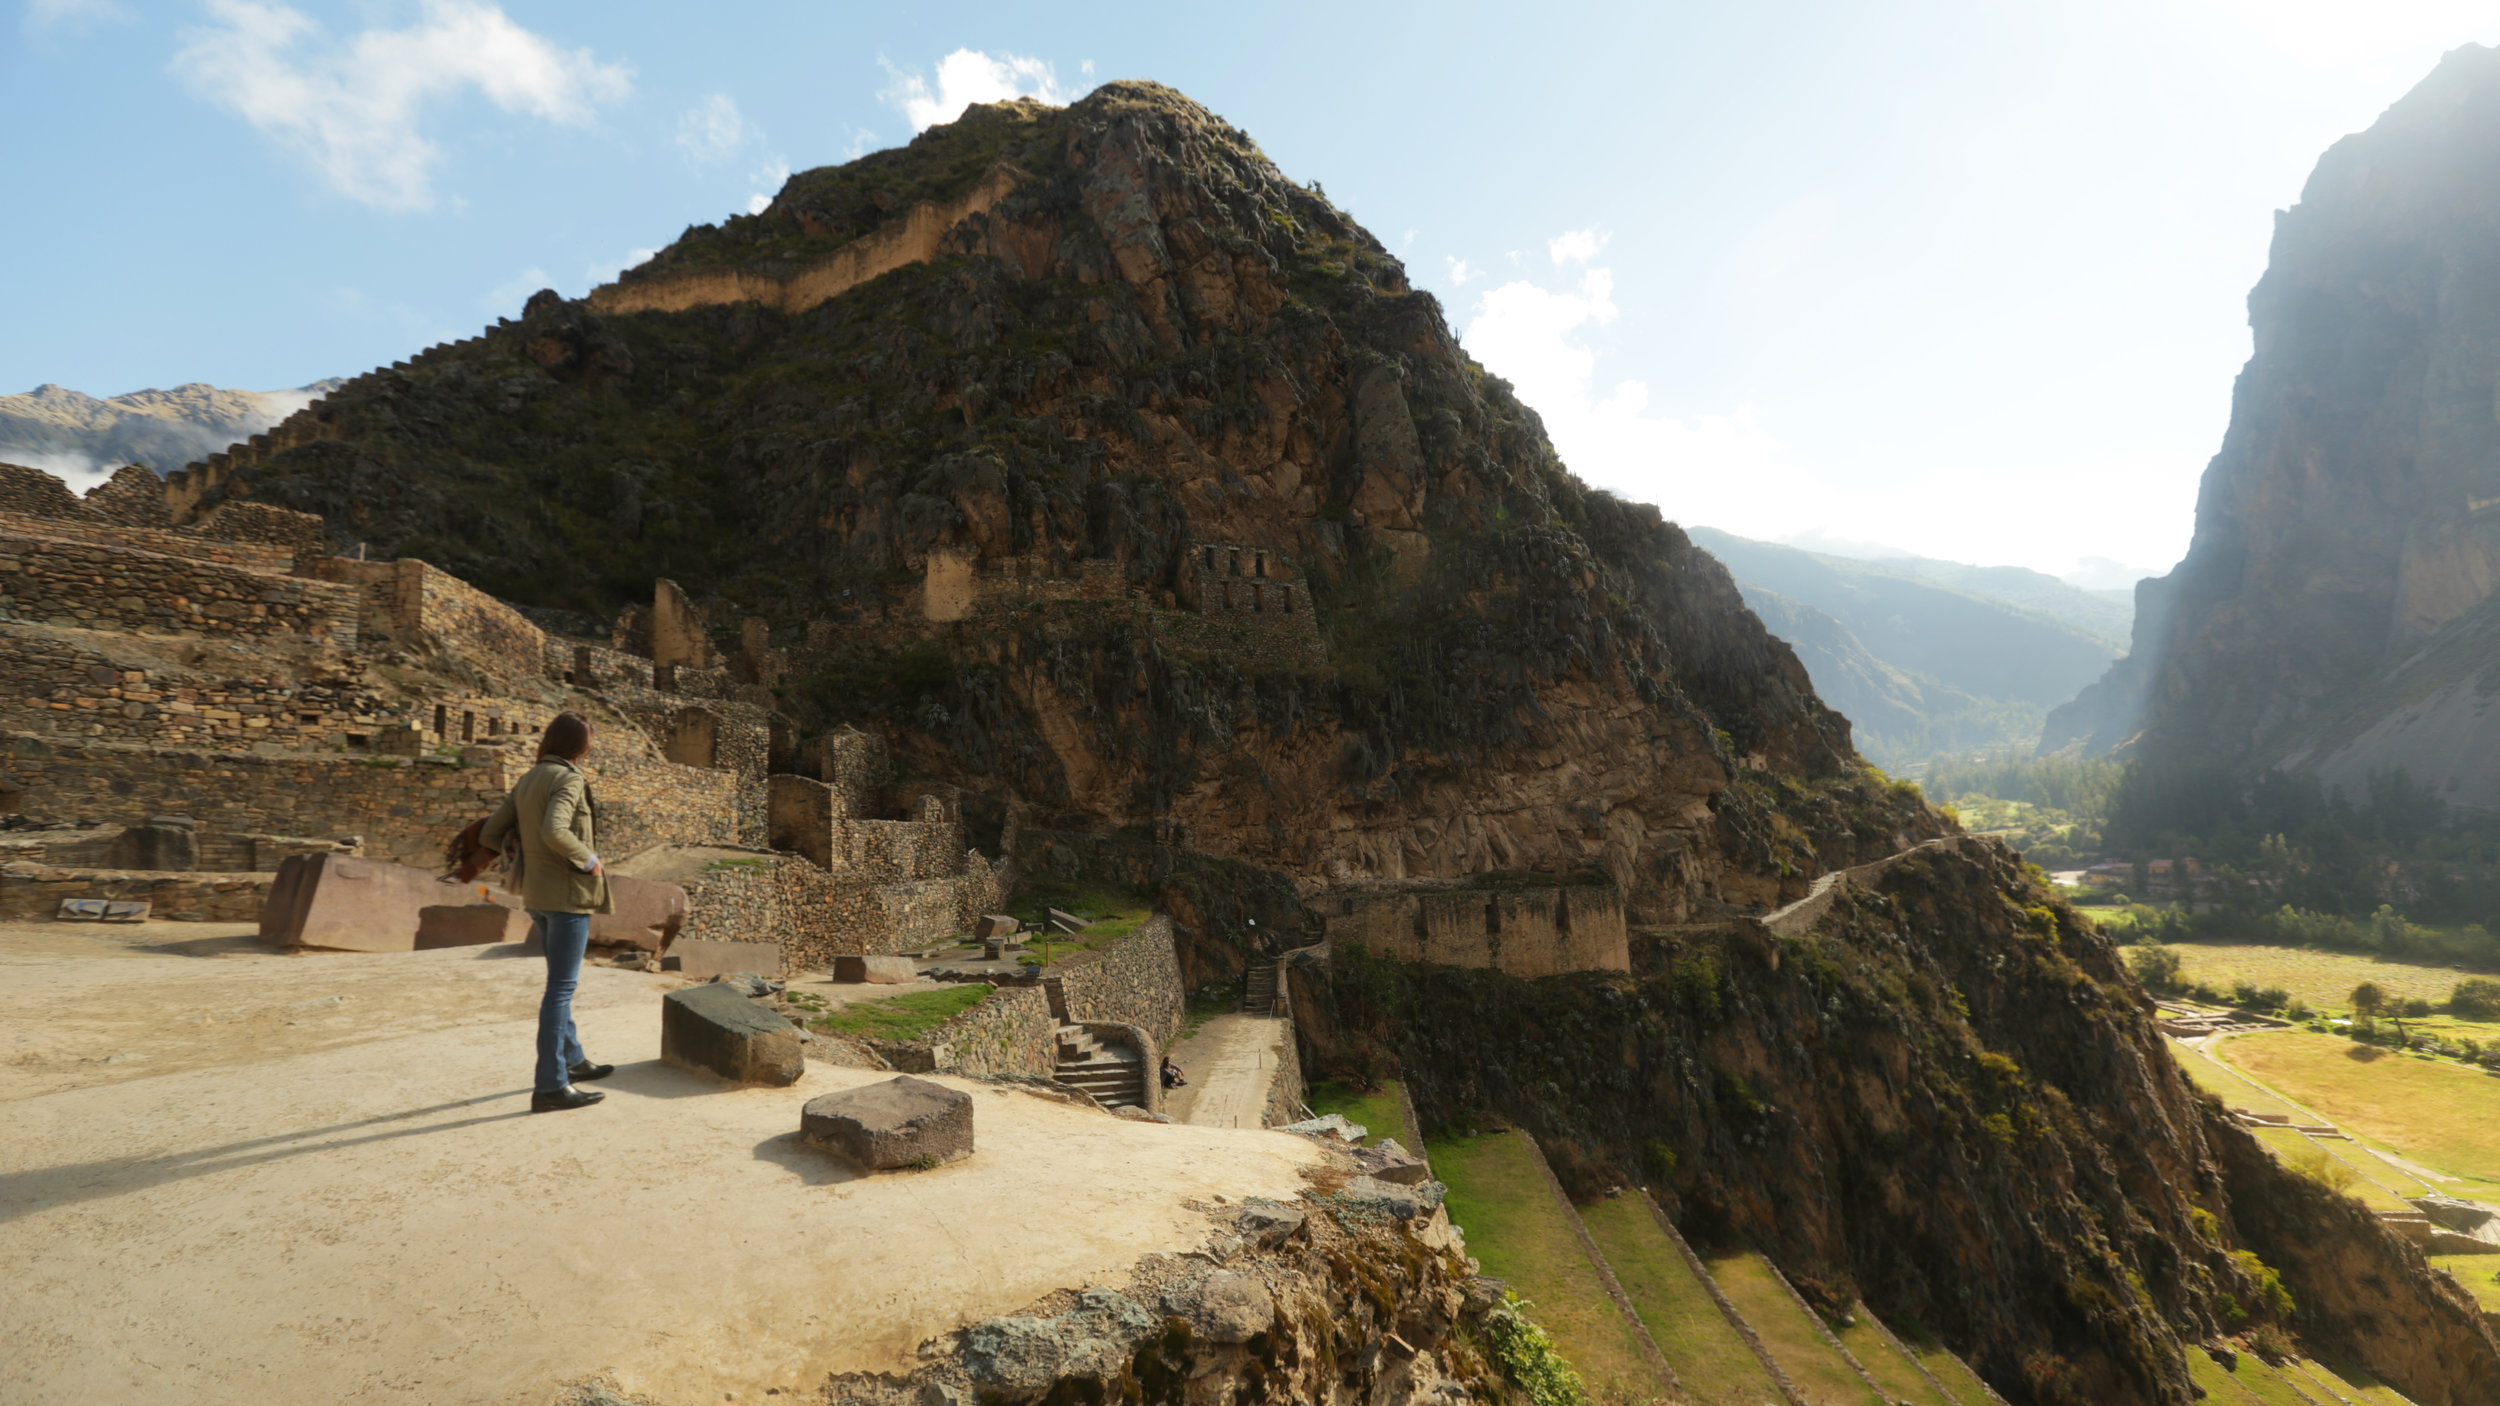 Excursion with Explora Sacred Valley